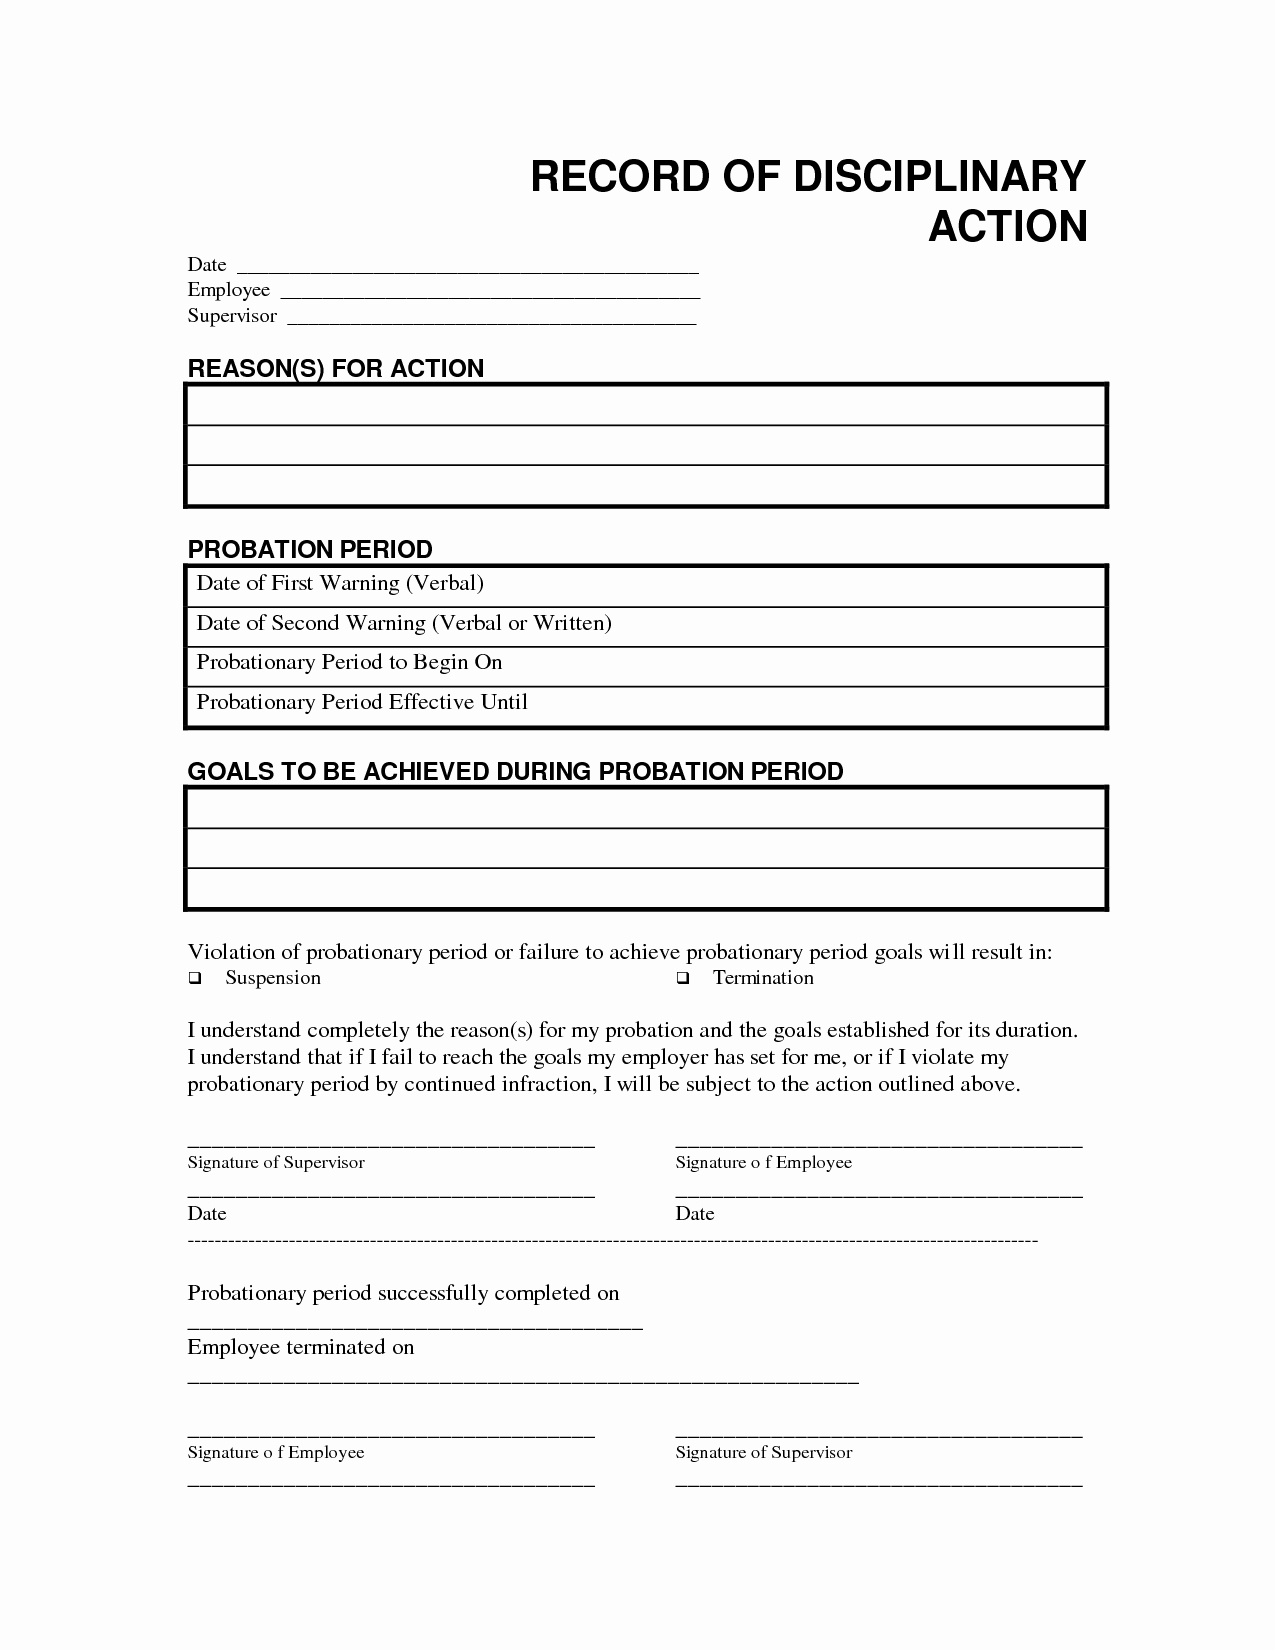 Progressive Discipline form Template Awesome Record Disciplinary Action Free Office form Template by